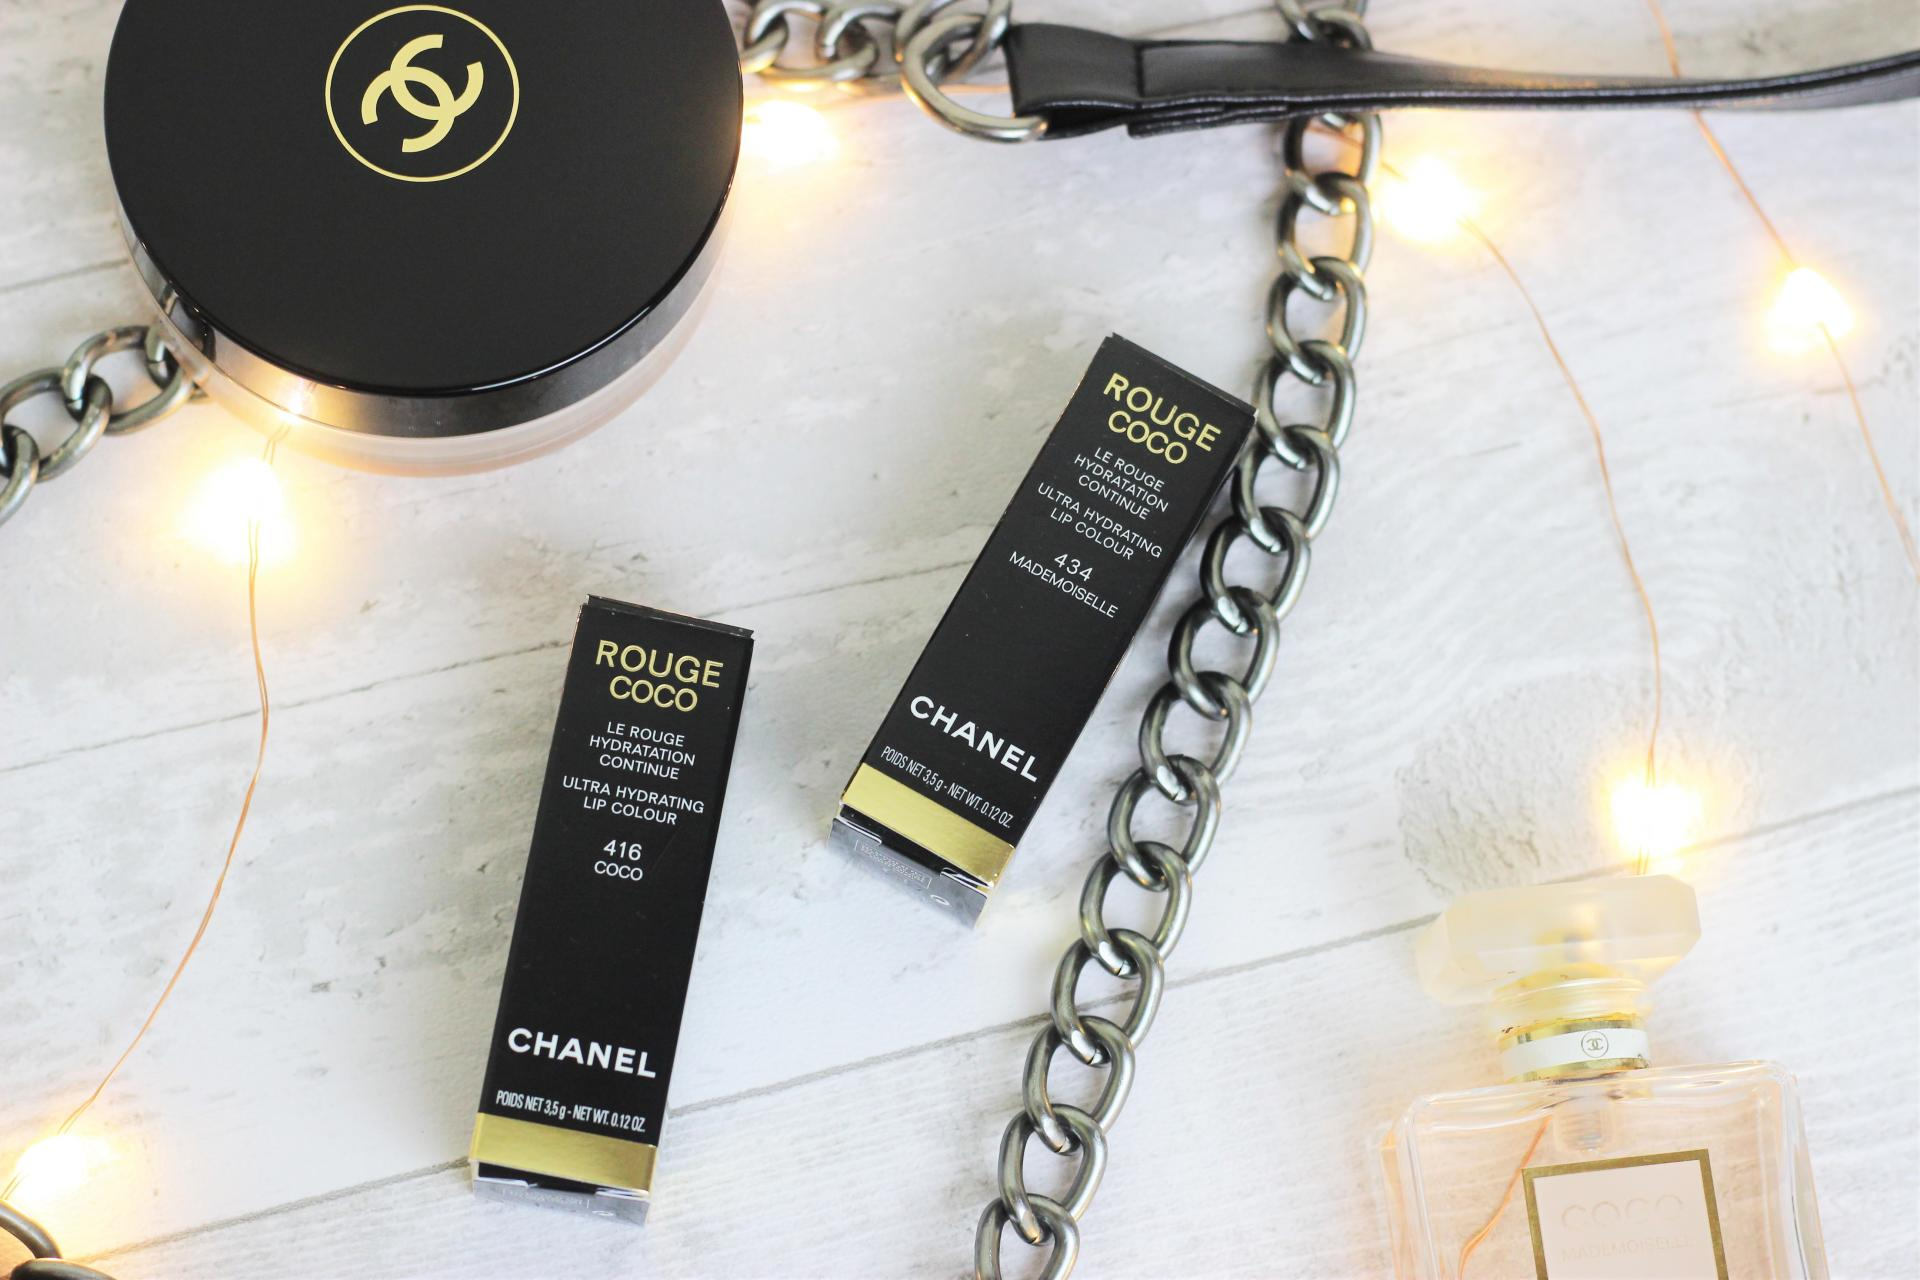 Chanel Rouge Coco Lipsticks - Coco & Mademoiselle